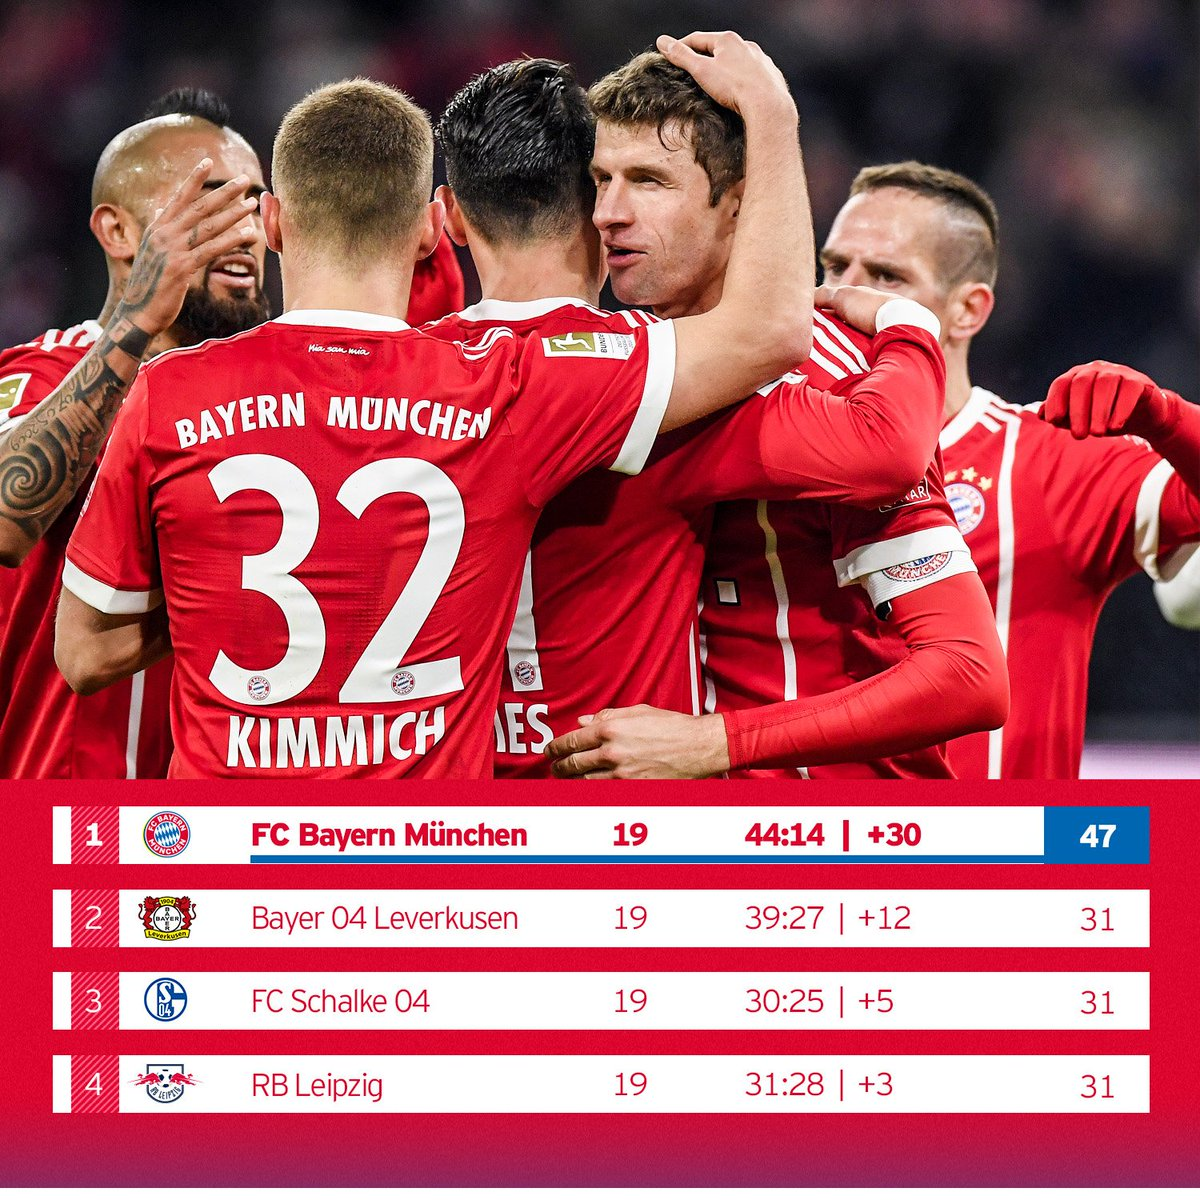 RT @FCBayernUS: The view from the 🔝‼️  #MiaSanMia https://t.co/WpKVWHqN61